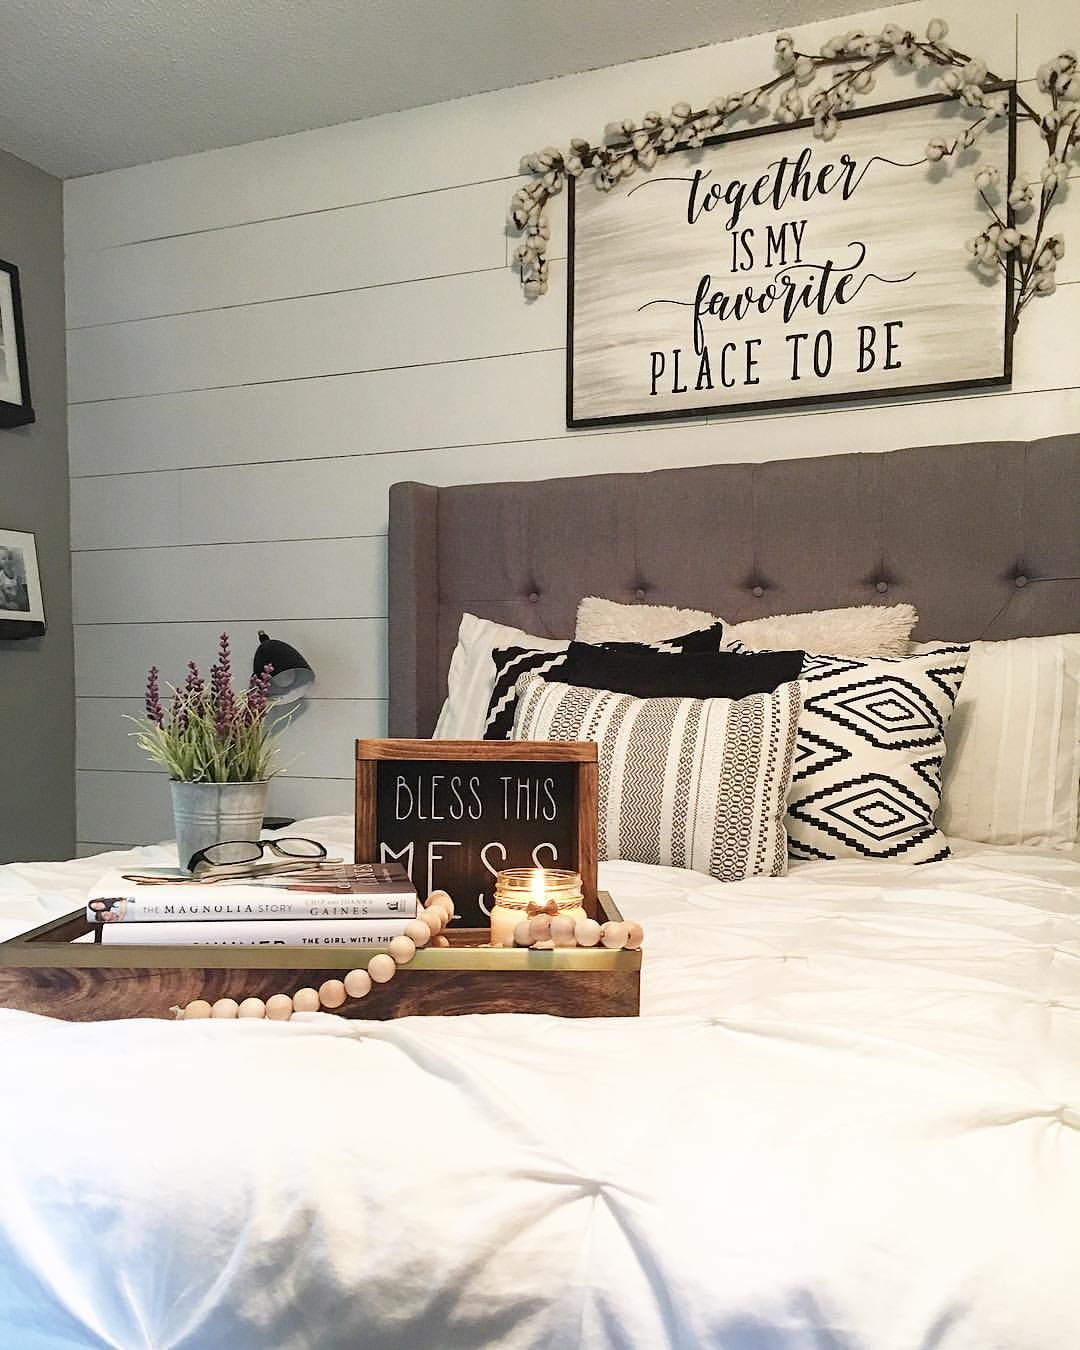 Modern Farmhouse Style Decorating Ideas On A Budget 16 White Bedding Robins And Modern